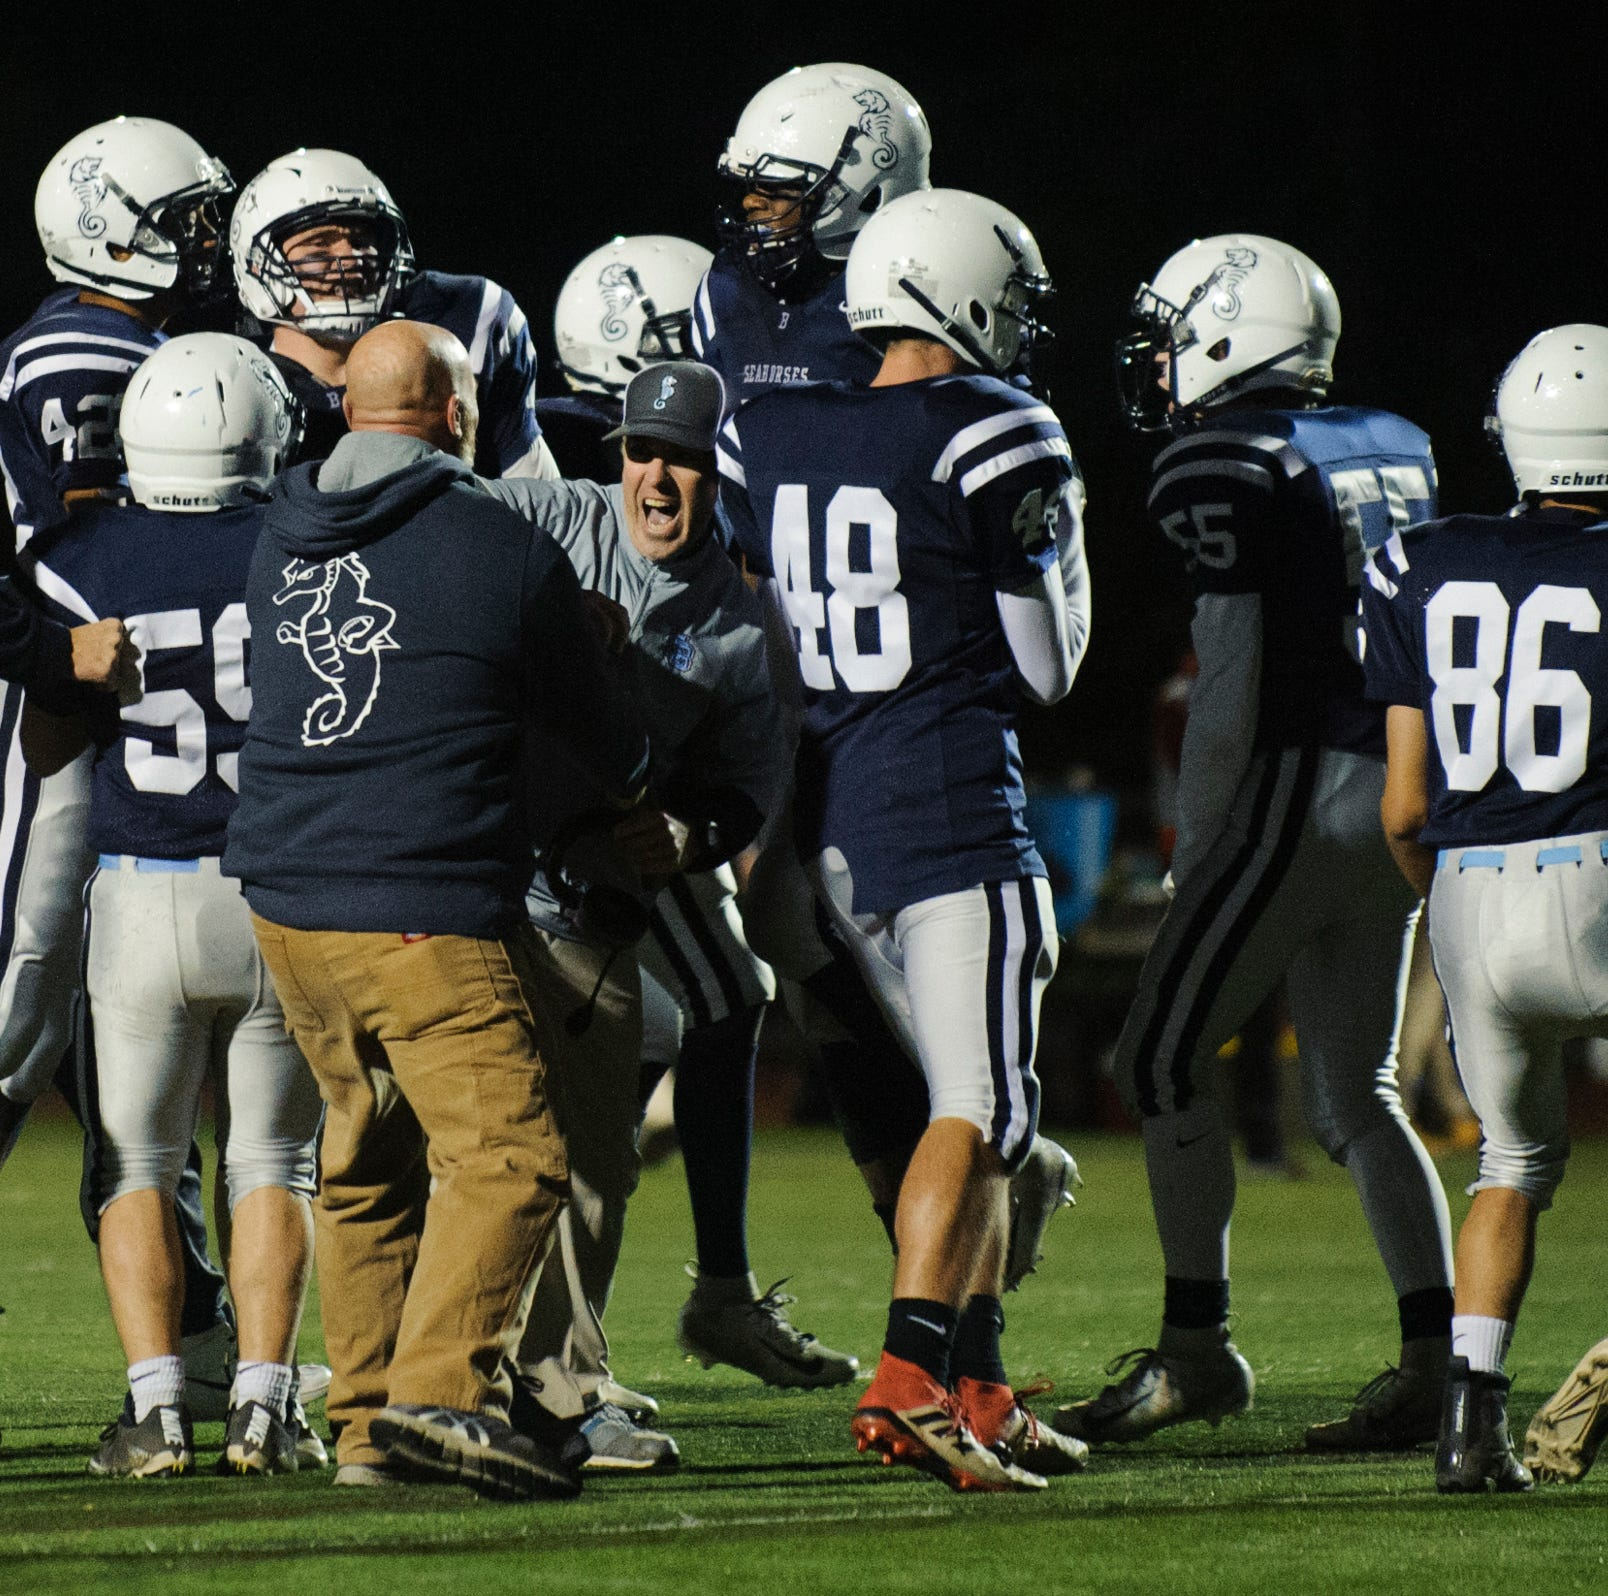 Vermont high school football: SeaWolves win OT classic to snare playoff spot